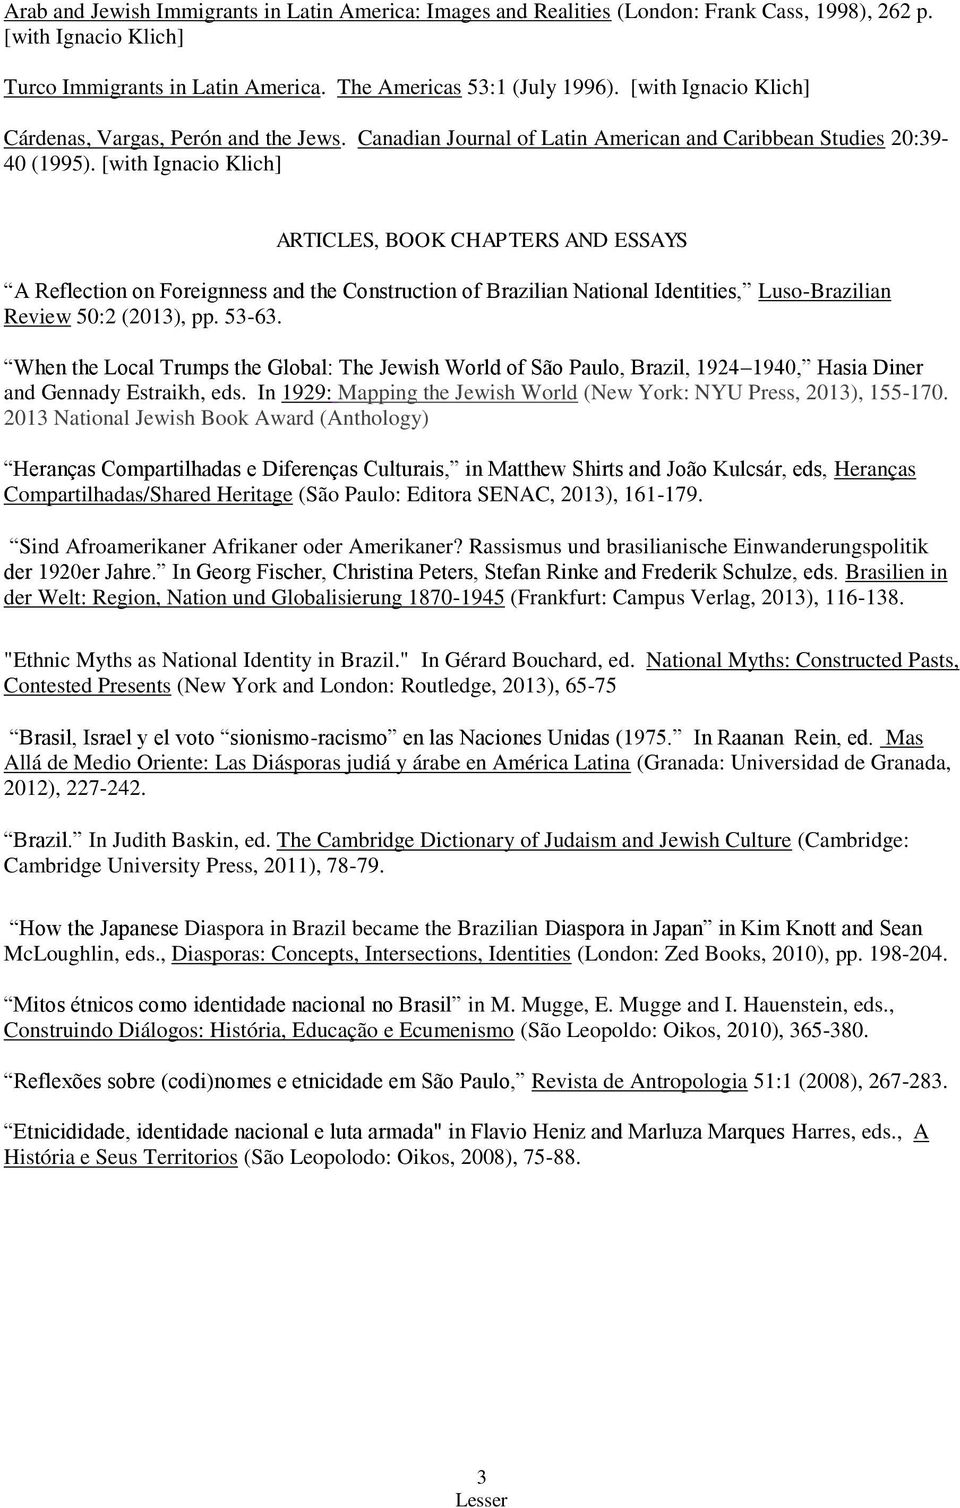 [with Ignacio Klich] ARTICLES, BOOK CHAPTERS AND ESSAYS A Reflection on Foreignness and the Construction of Brazilian National Identities, Luso-Brazilian Review 50:2 (2013), pp. 53-63.